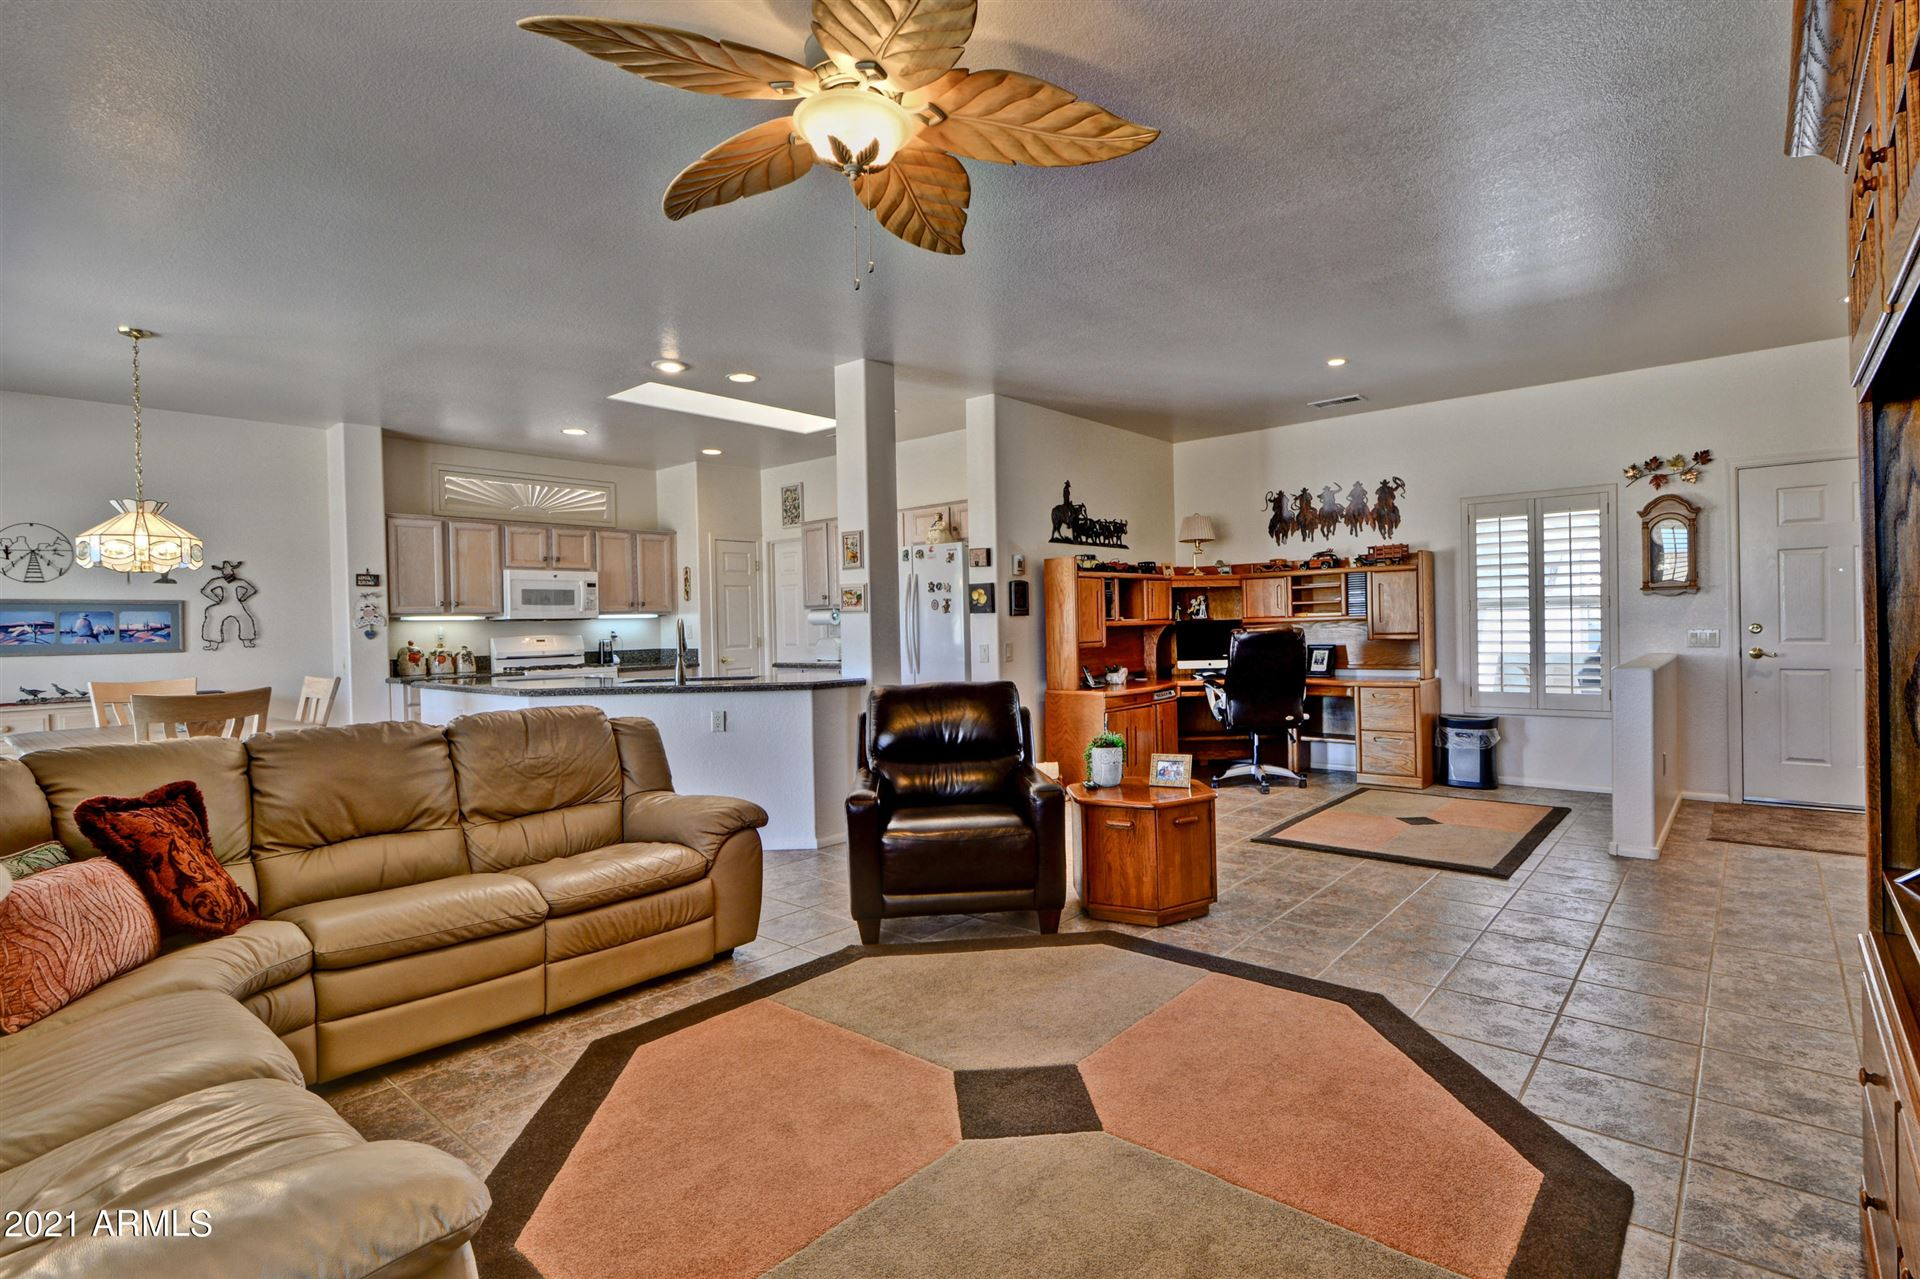 Photo of 15150 W LAS BRIZAS Lane, Sun City West, AZ 85375 (MLS # 6200160)